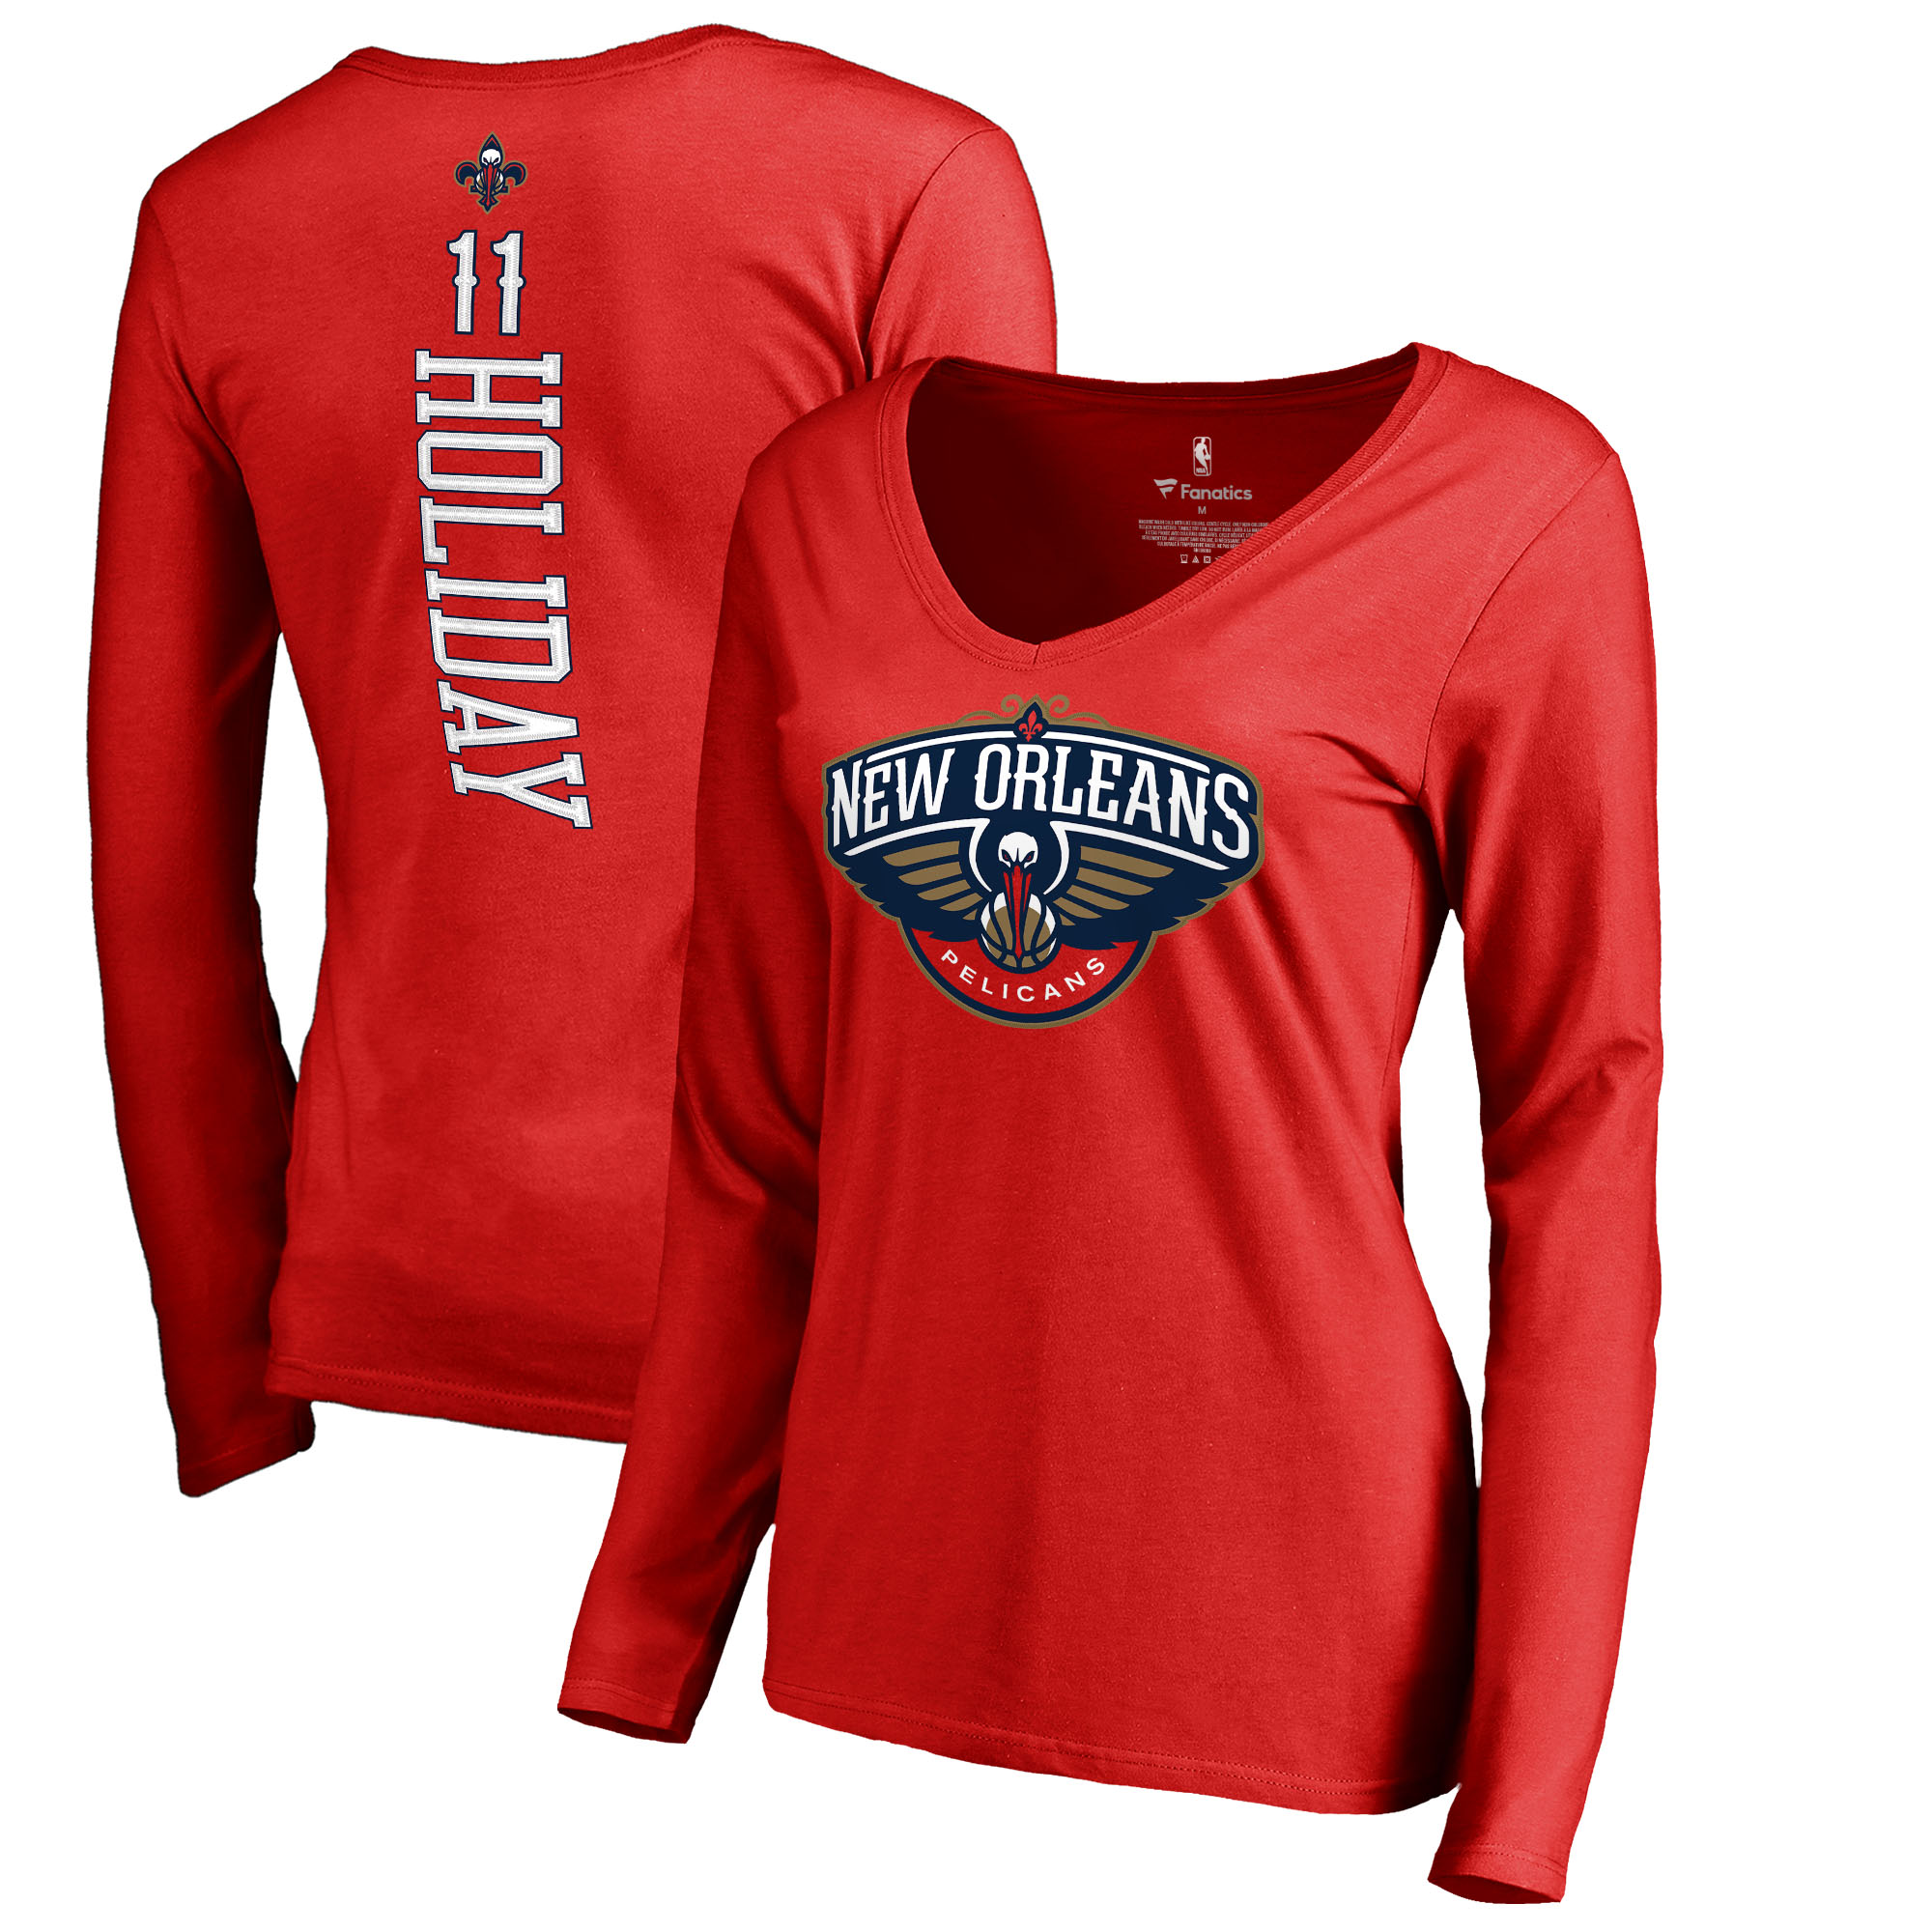 Jrue Holiday New Orleans Pelicans Fanatics Branded Women's Long Sleeve V-Neck Backer Name and Number T-Shirt - Red